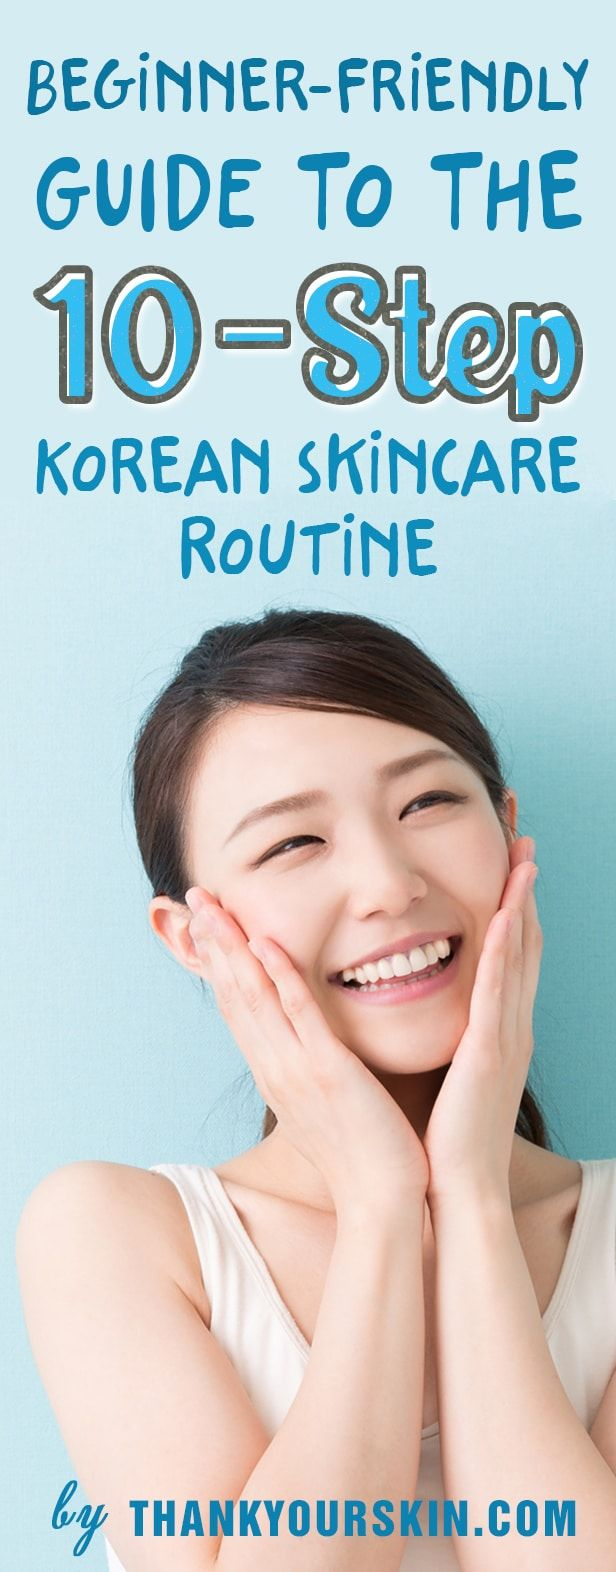 10 Step Korean Skincare Routine - Beauty Secrets for Glowing SKin - Products to use in night and morning #KoreanSkincare #SkinCreRoutine #ThankYourSkin